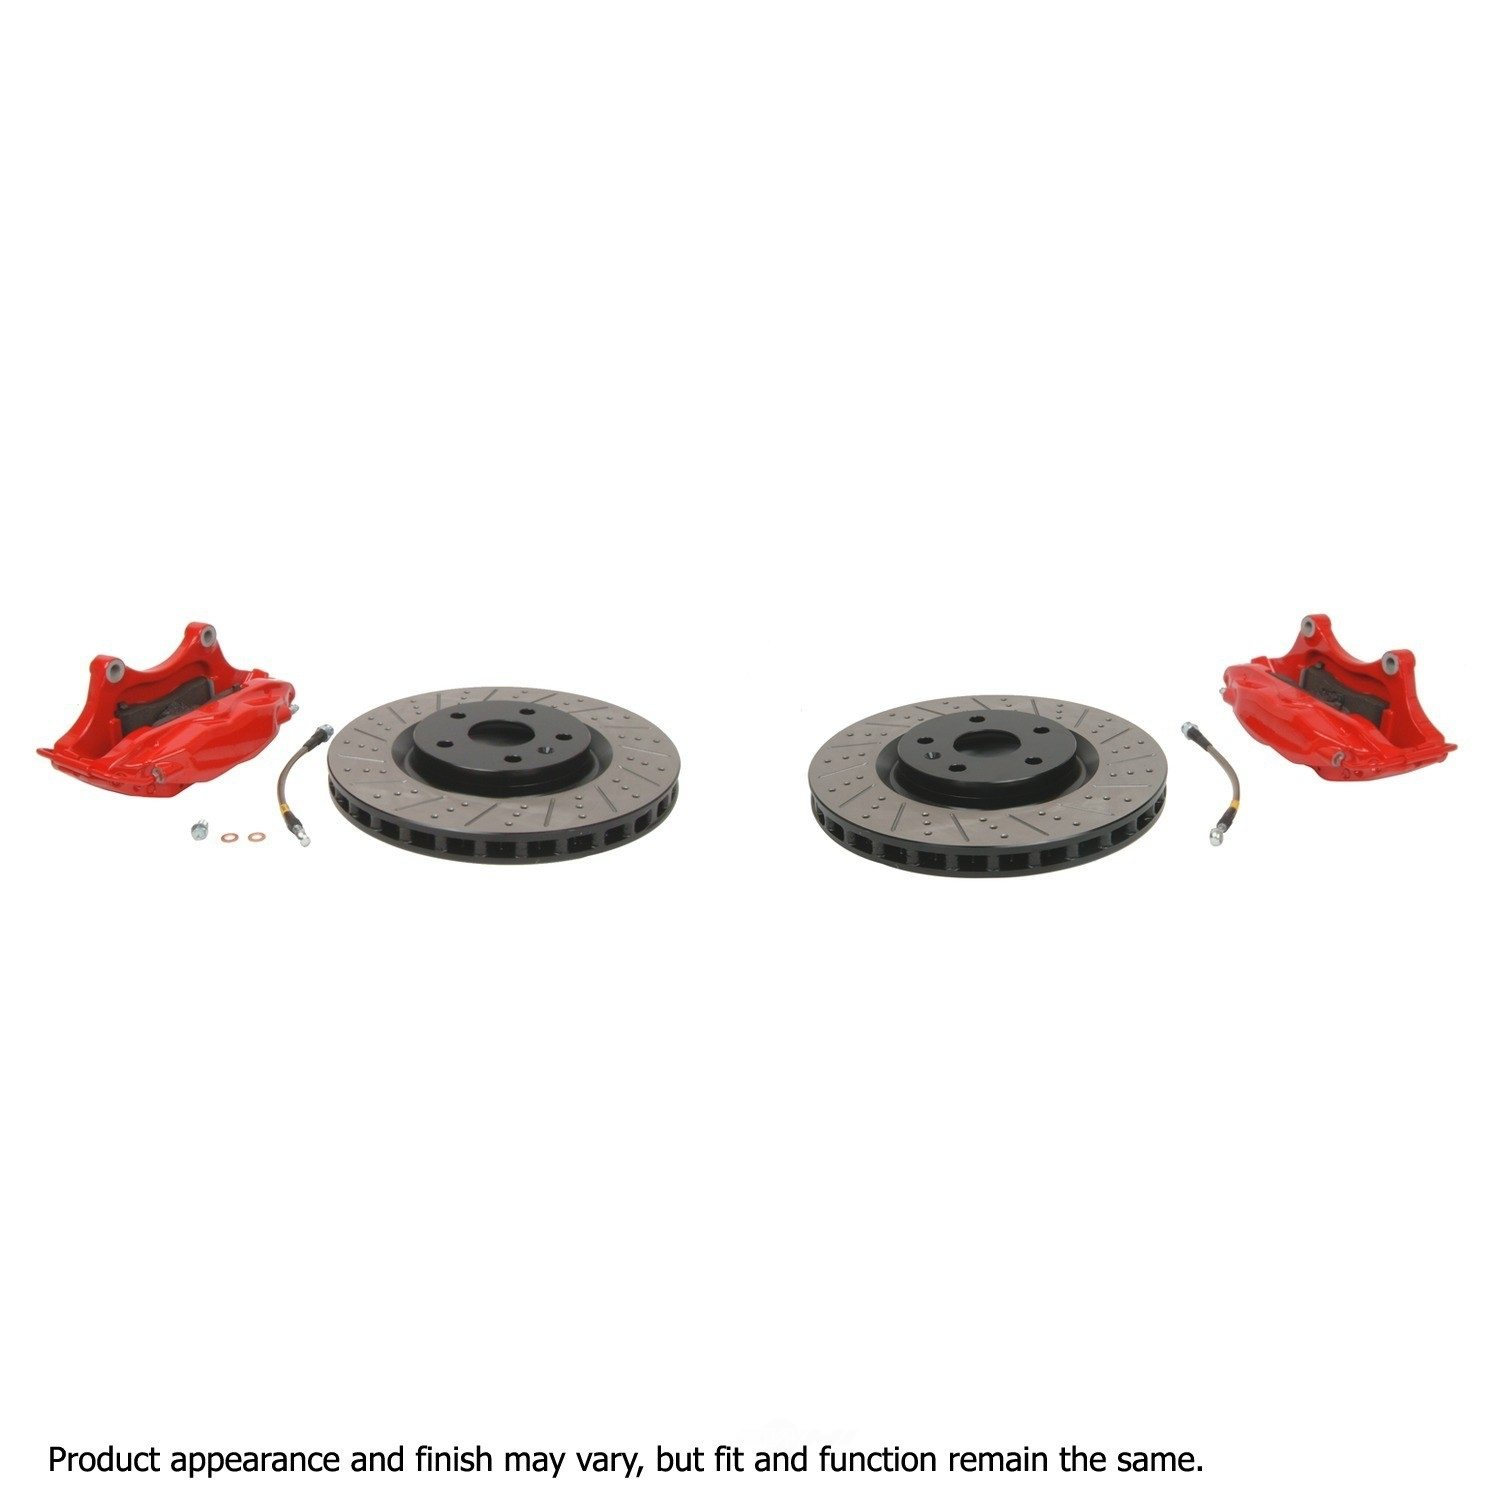 CARDONE/A-1 CARDONE - Reman Performance Brake Upgrade Kit (Front) - A1C 2B-9022XR